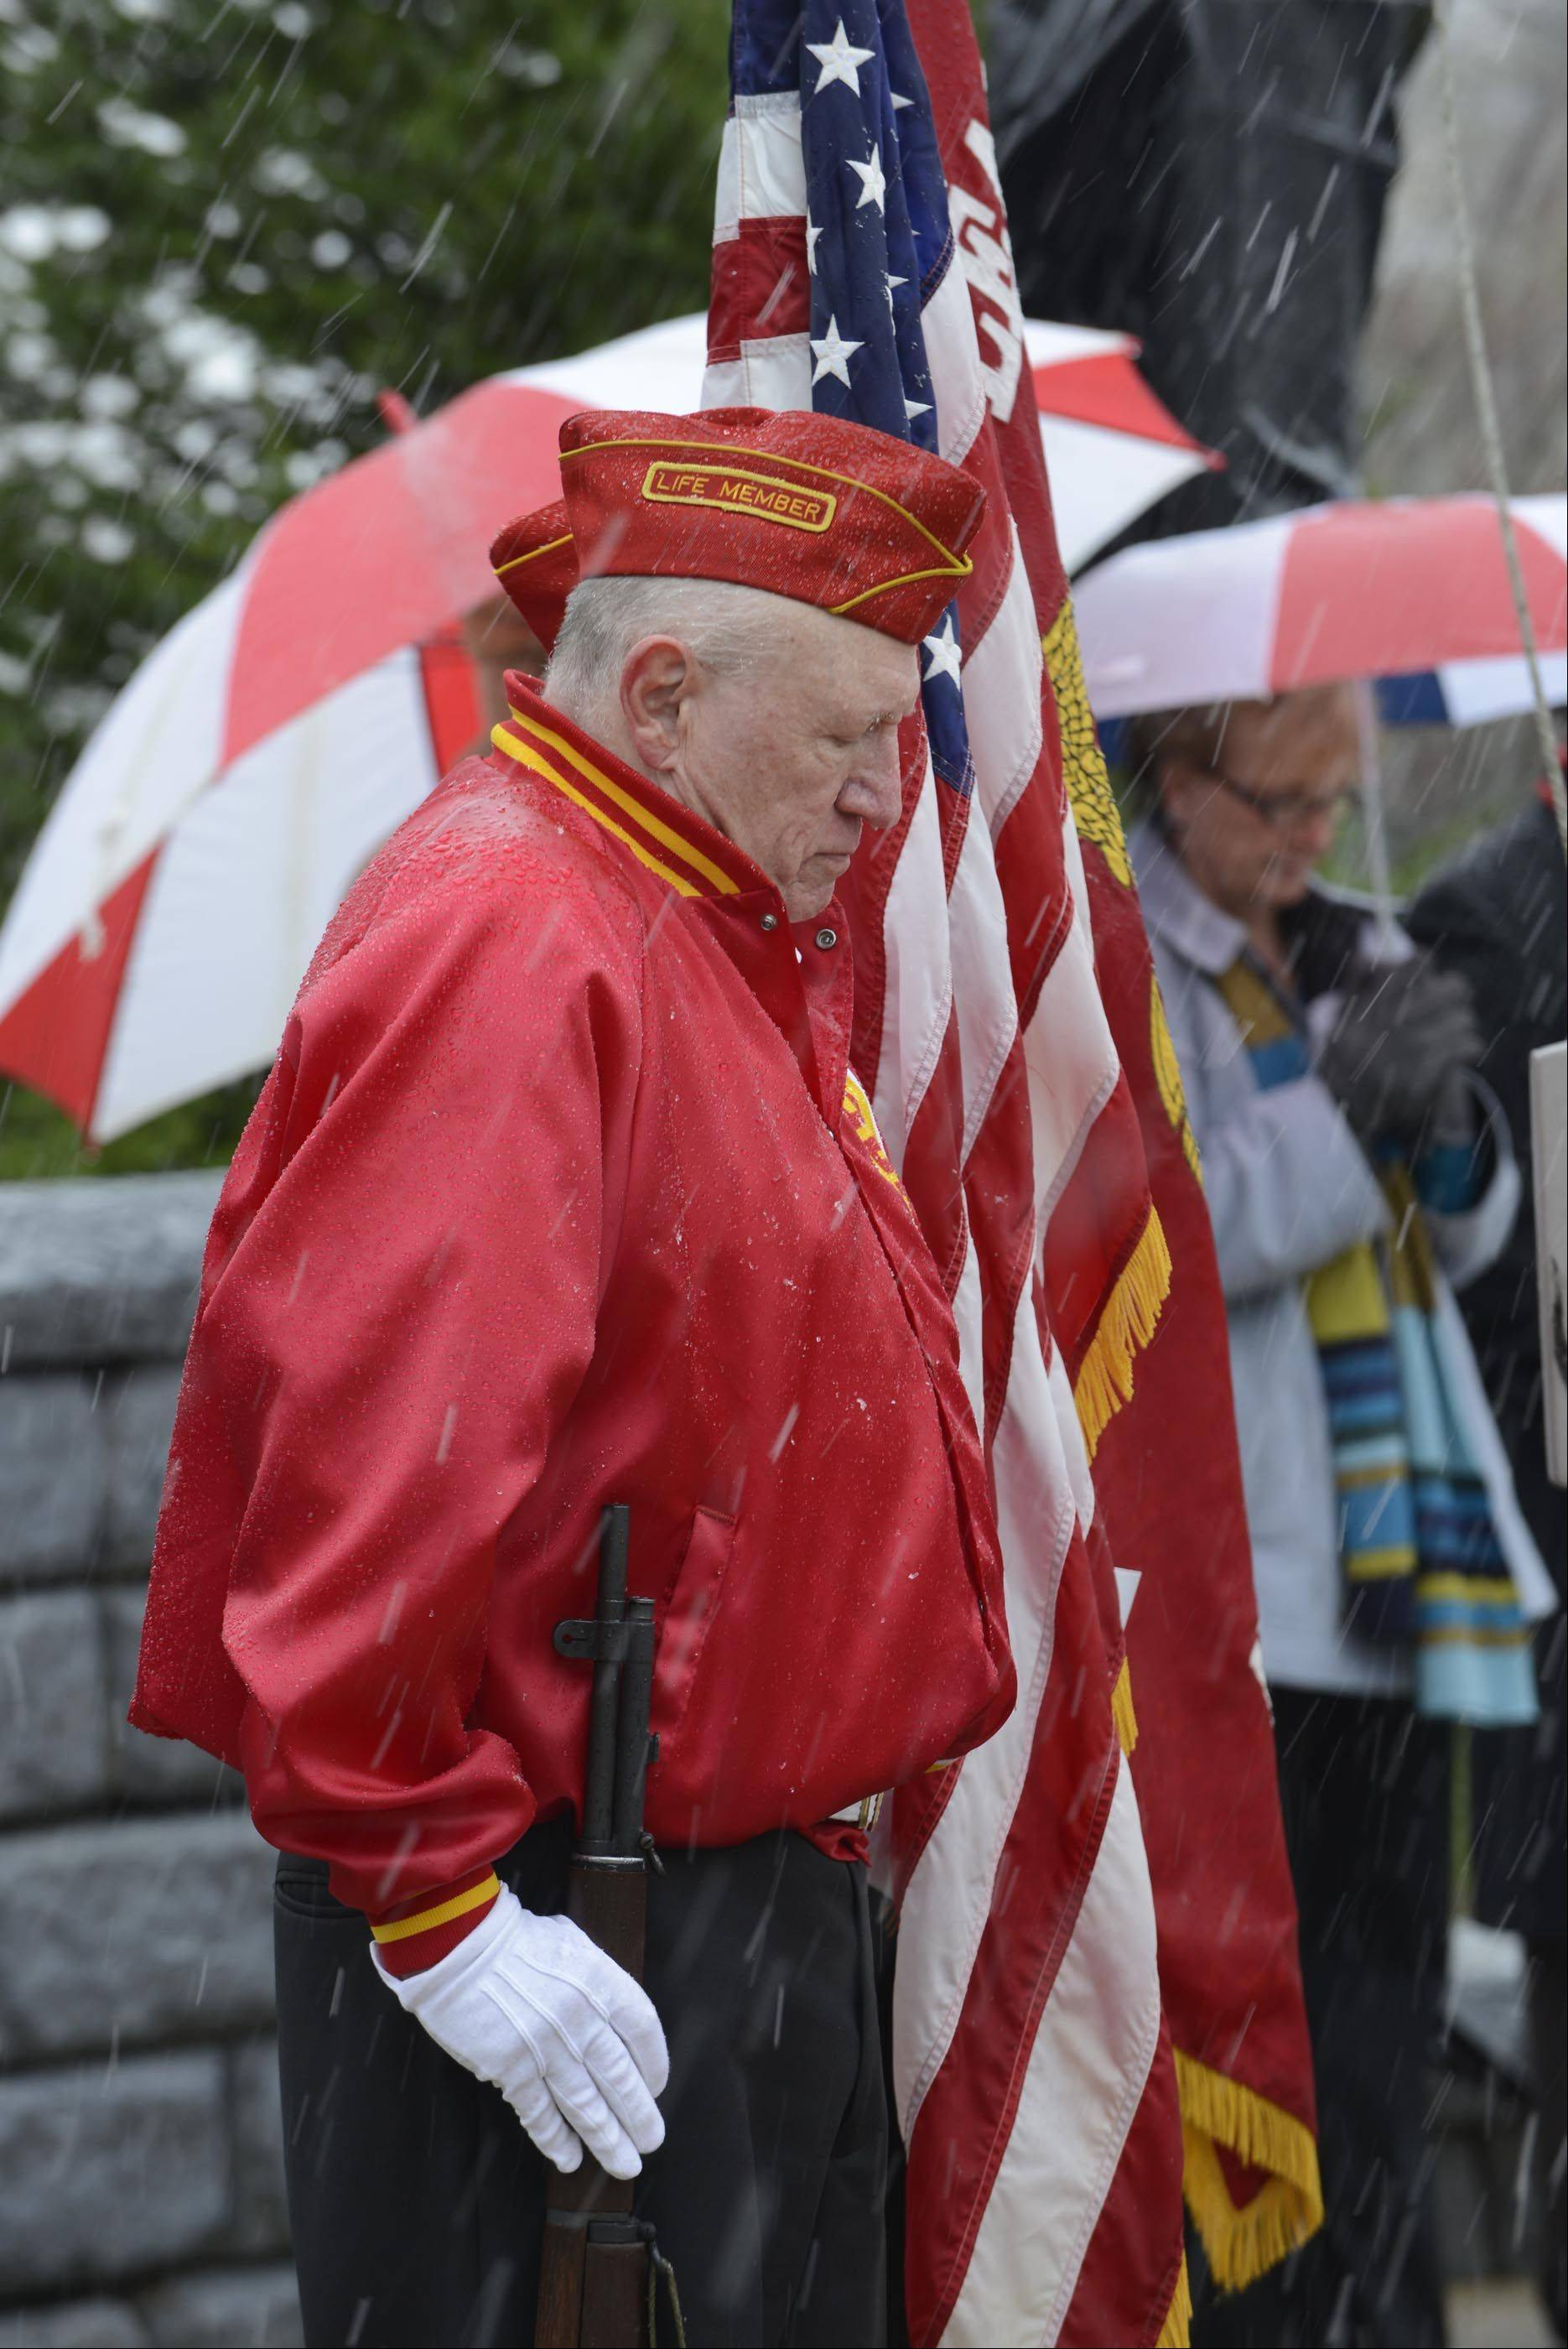 North Aurora Honor Guard member Robert L. Thornton bows his head in prayer during a Veterans Day ceremony Monday at the Veterans Memorial on Willow Way in North Aurora. He served in the Marine Corp.